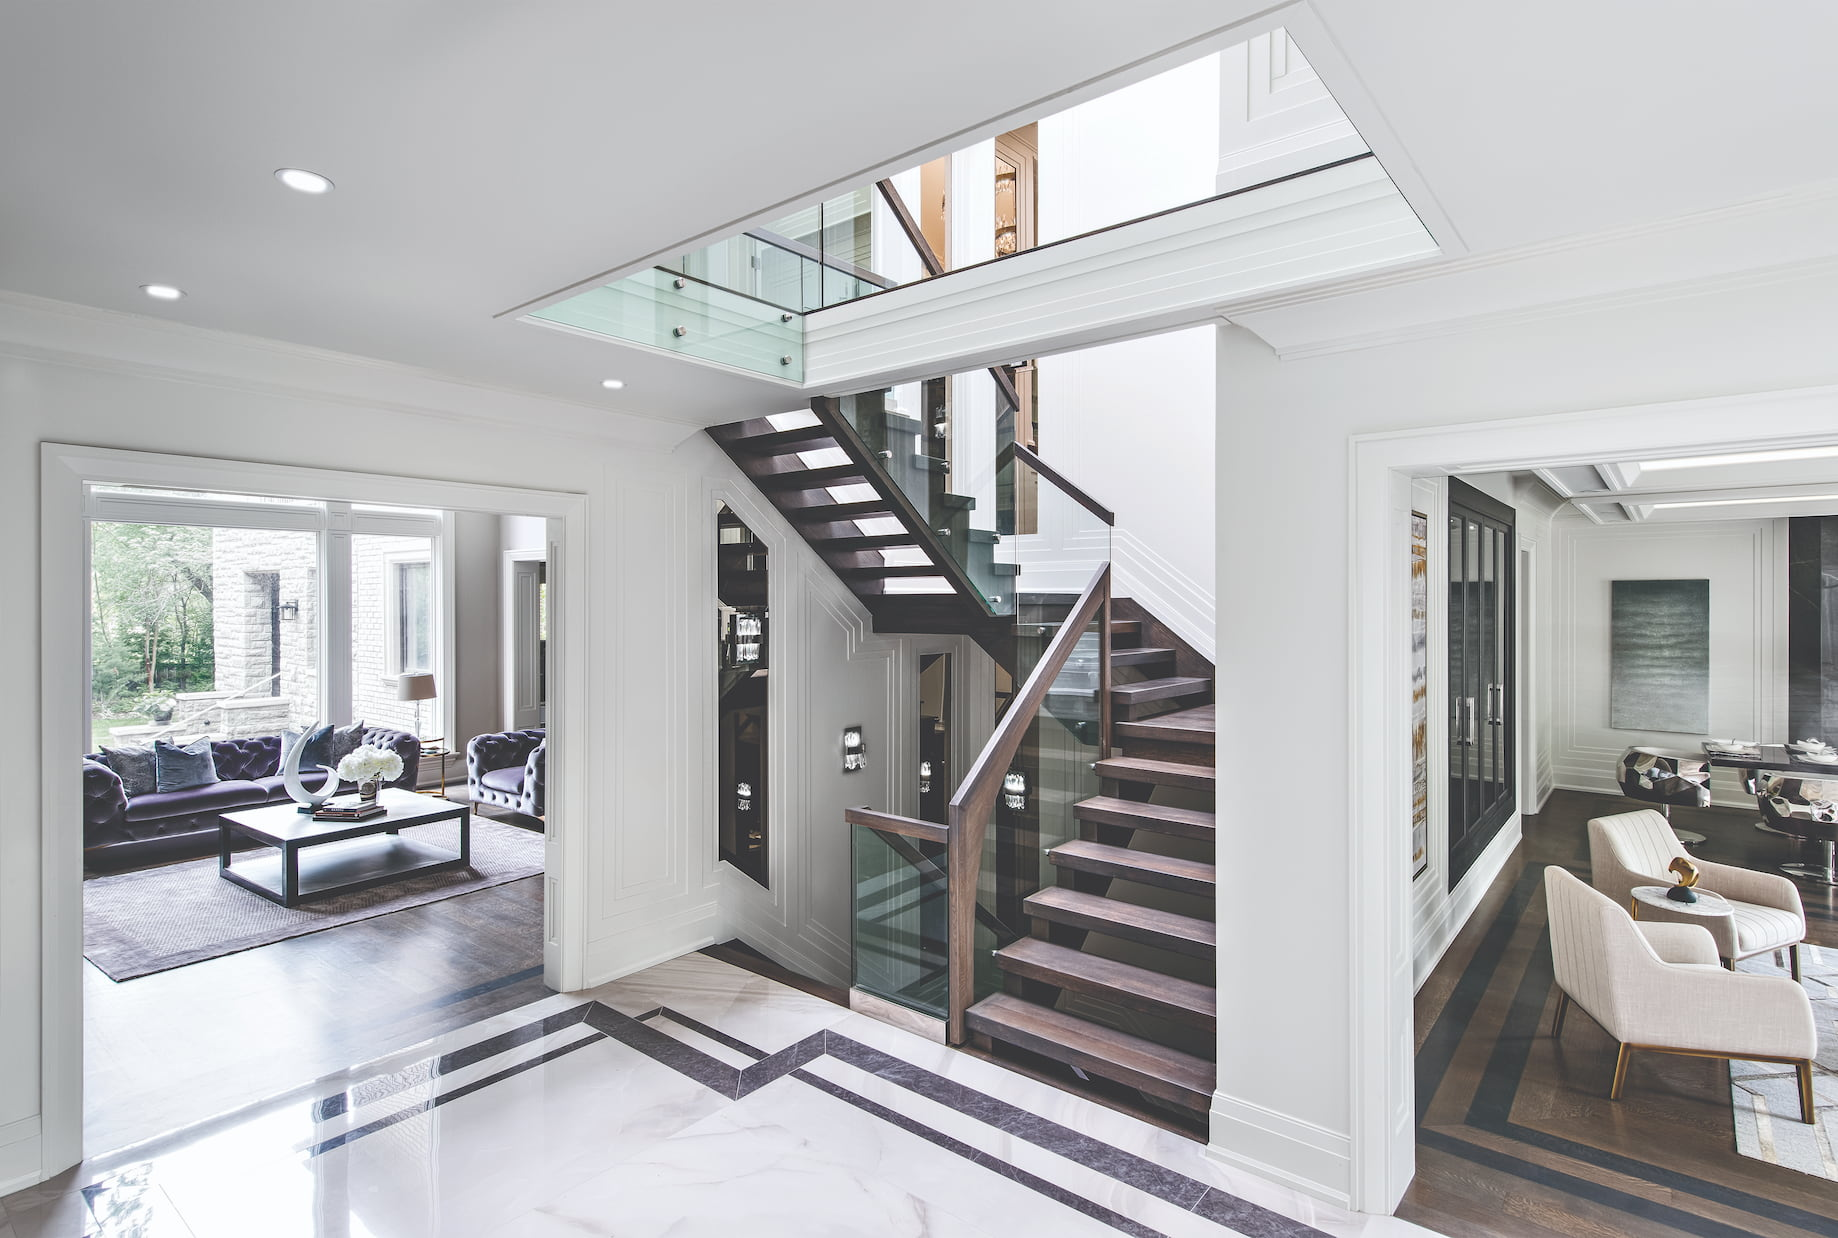 custom staircase with wooden stairs and railings with glass